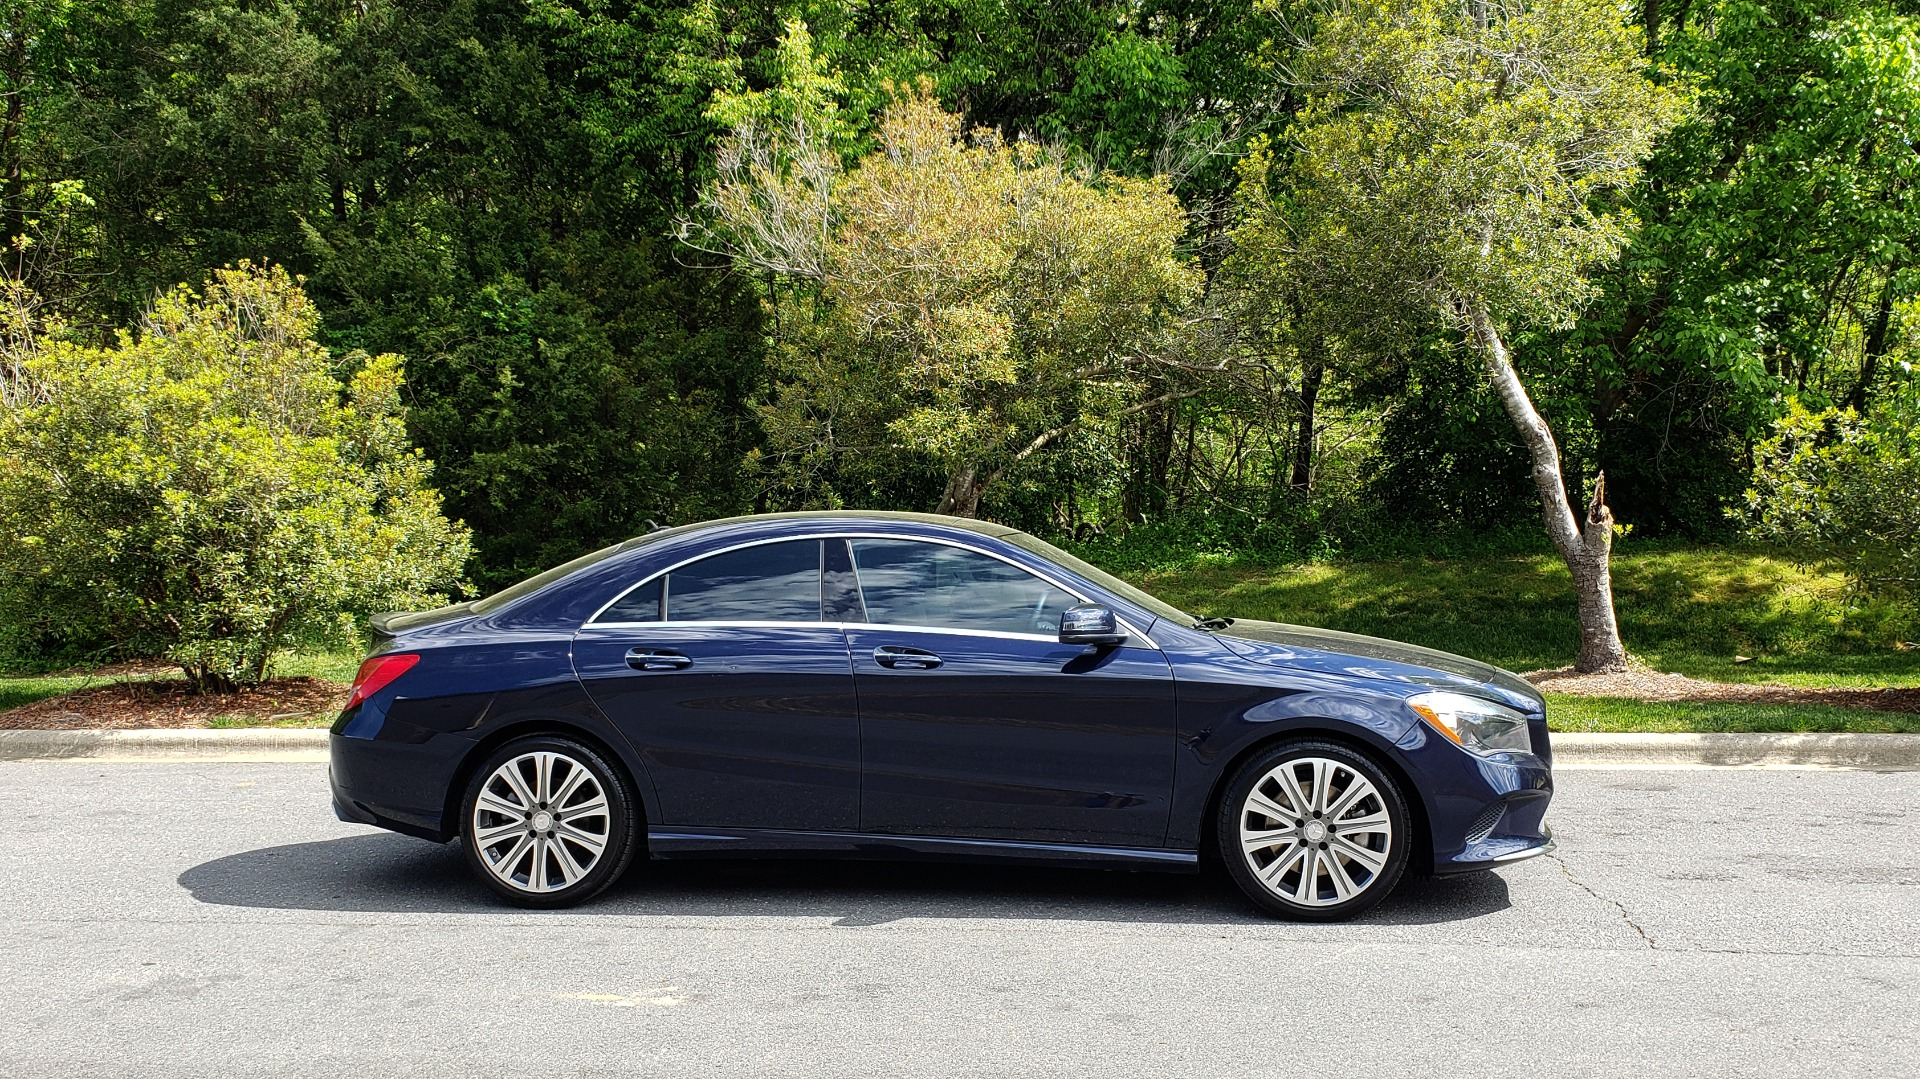 Used 2017 Mercedes-Benz CLA 250 PREMIUM / PANO-ROOF / HK SOUNDS / BSM / REARVIEW for sale Sold at Formula Imports in Charlotte NC 28227 5